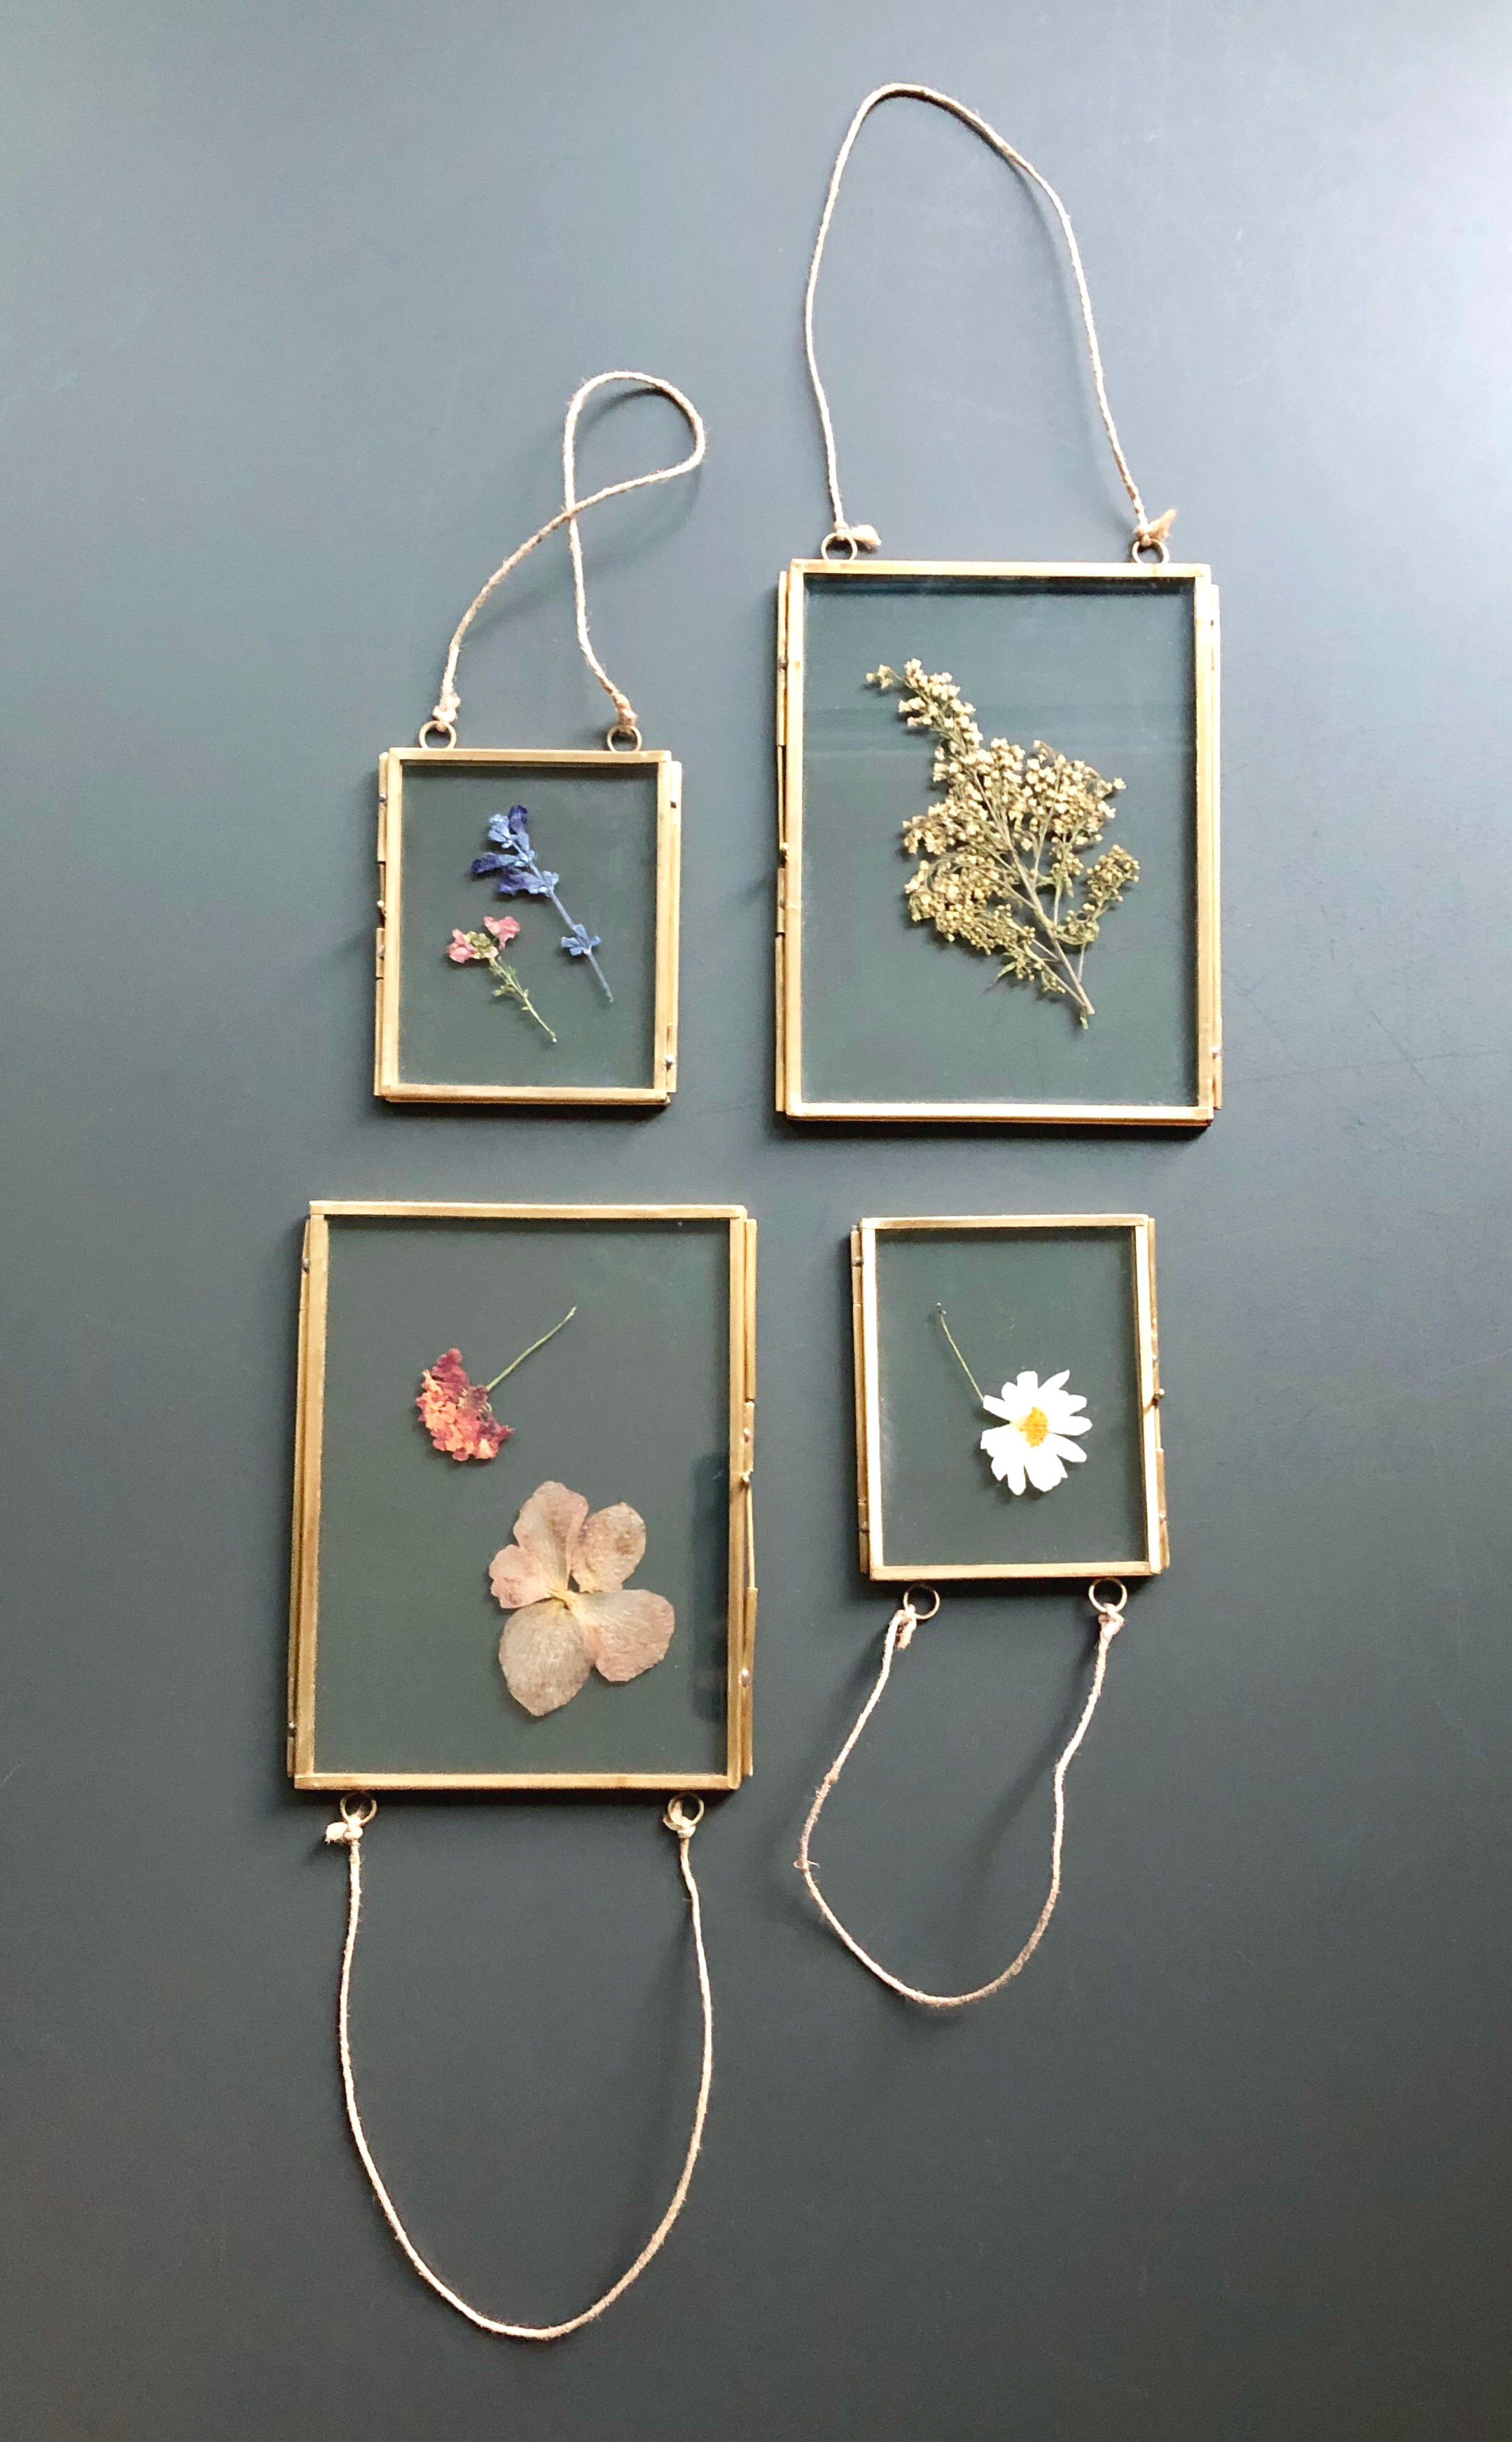 Pressed Flower Display